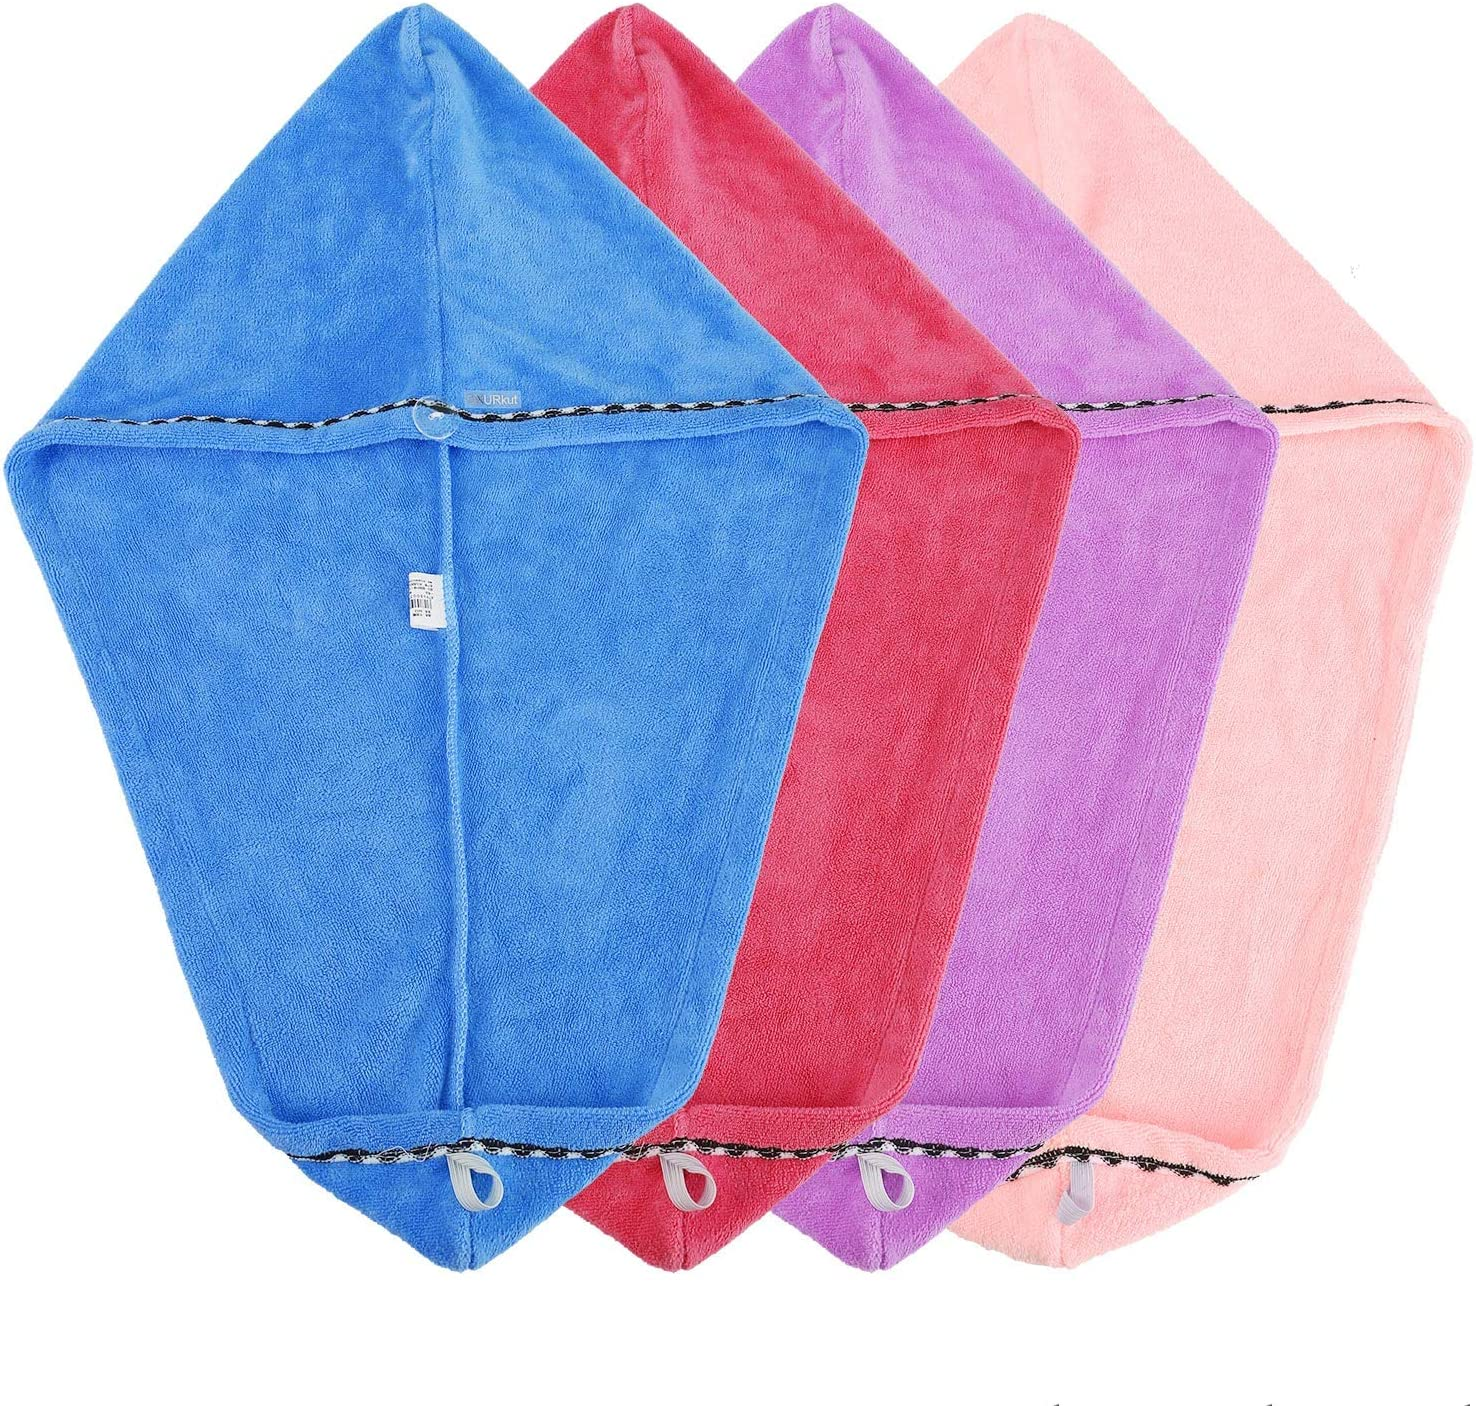 4 Pack Hair Drying Towels Head Wrap Women for Dry Ab New York Mall Super Fast Ranking TOP11